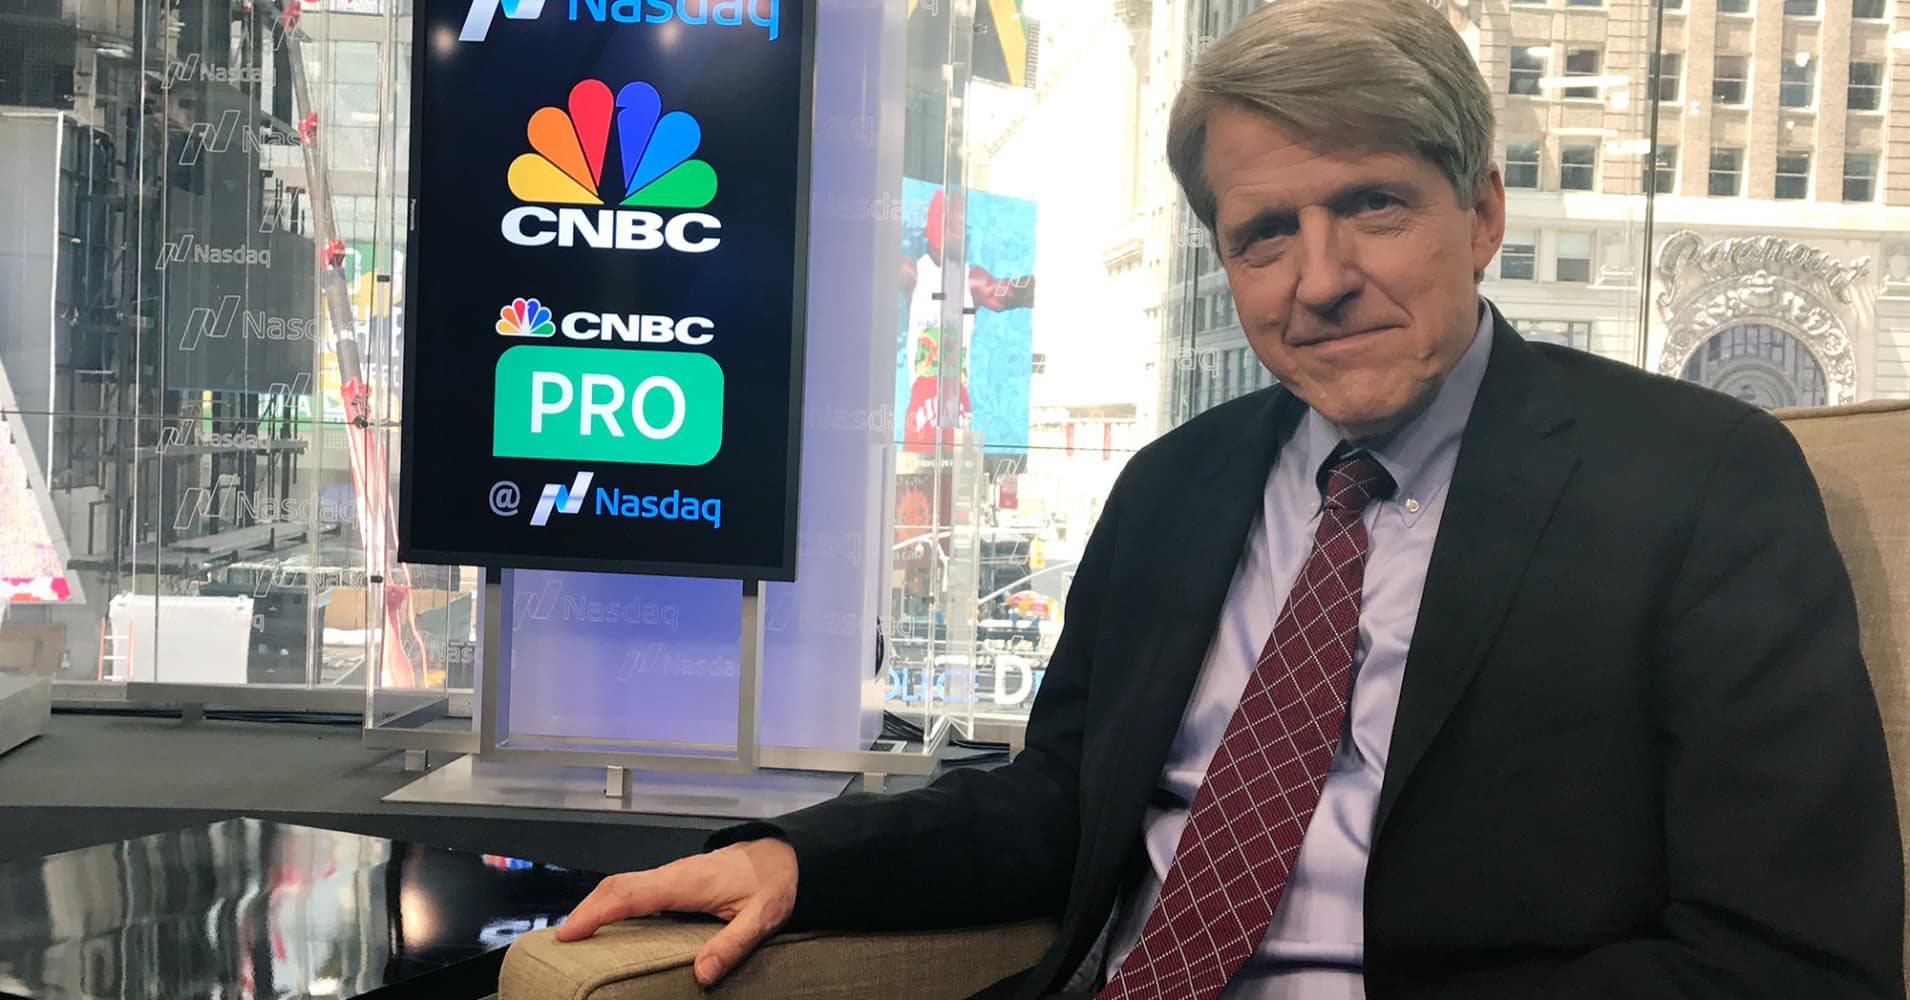 PRO Talks: Robert Shiller on Trump, his market outlook